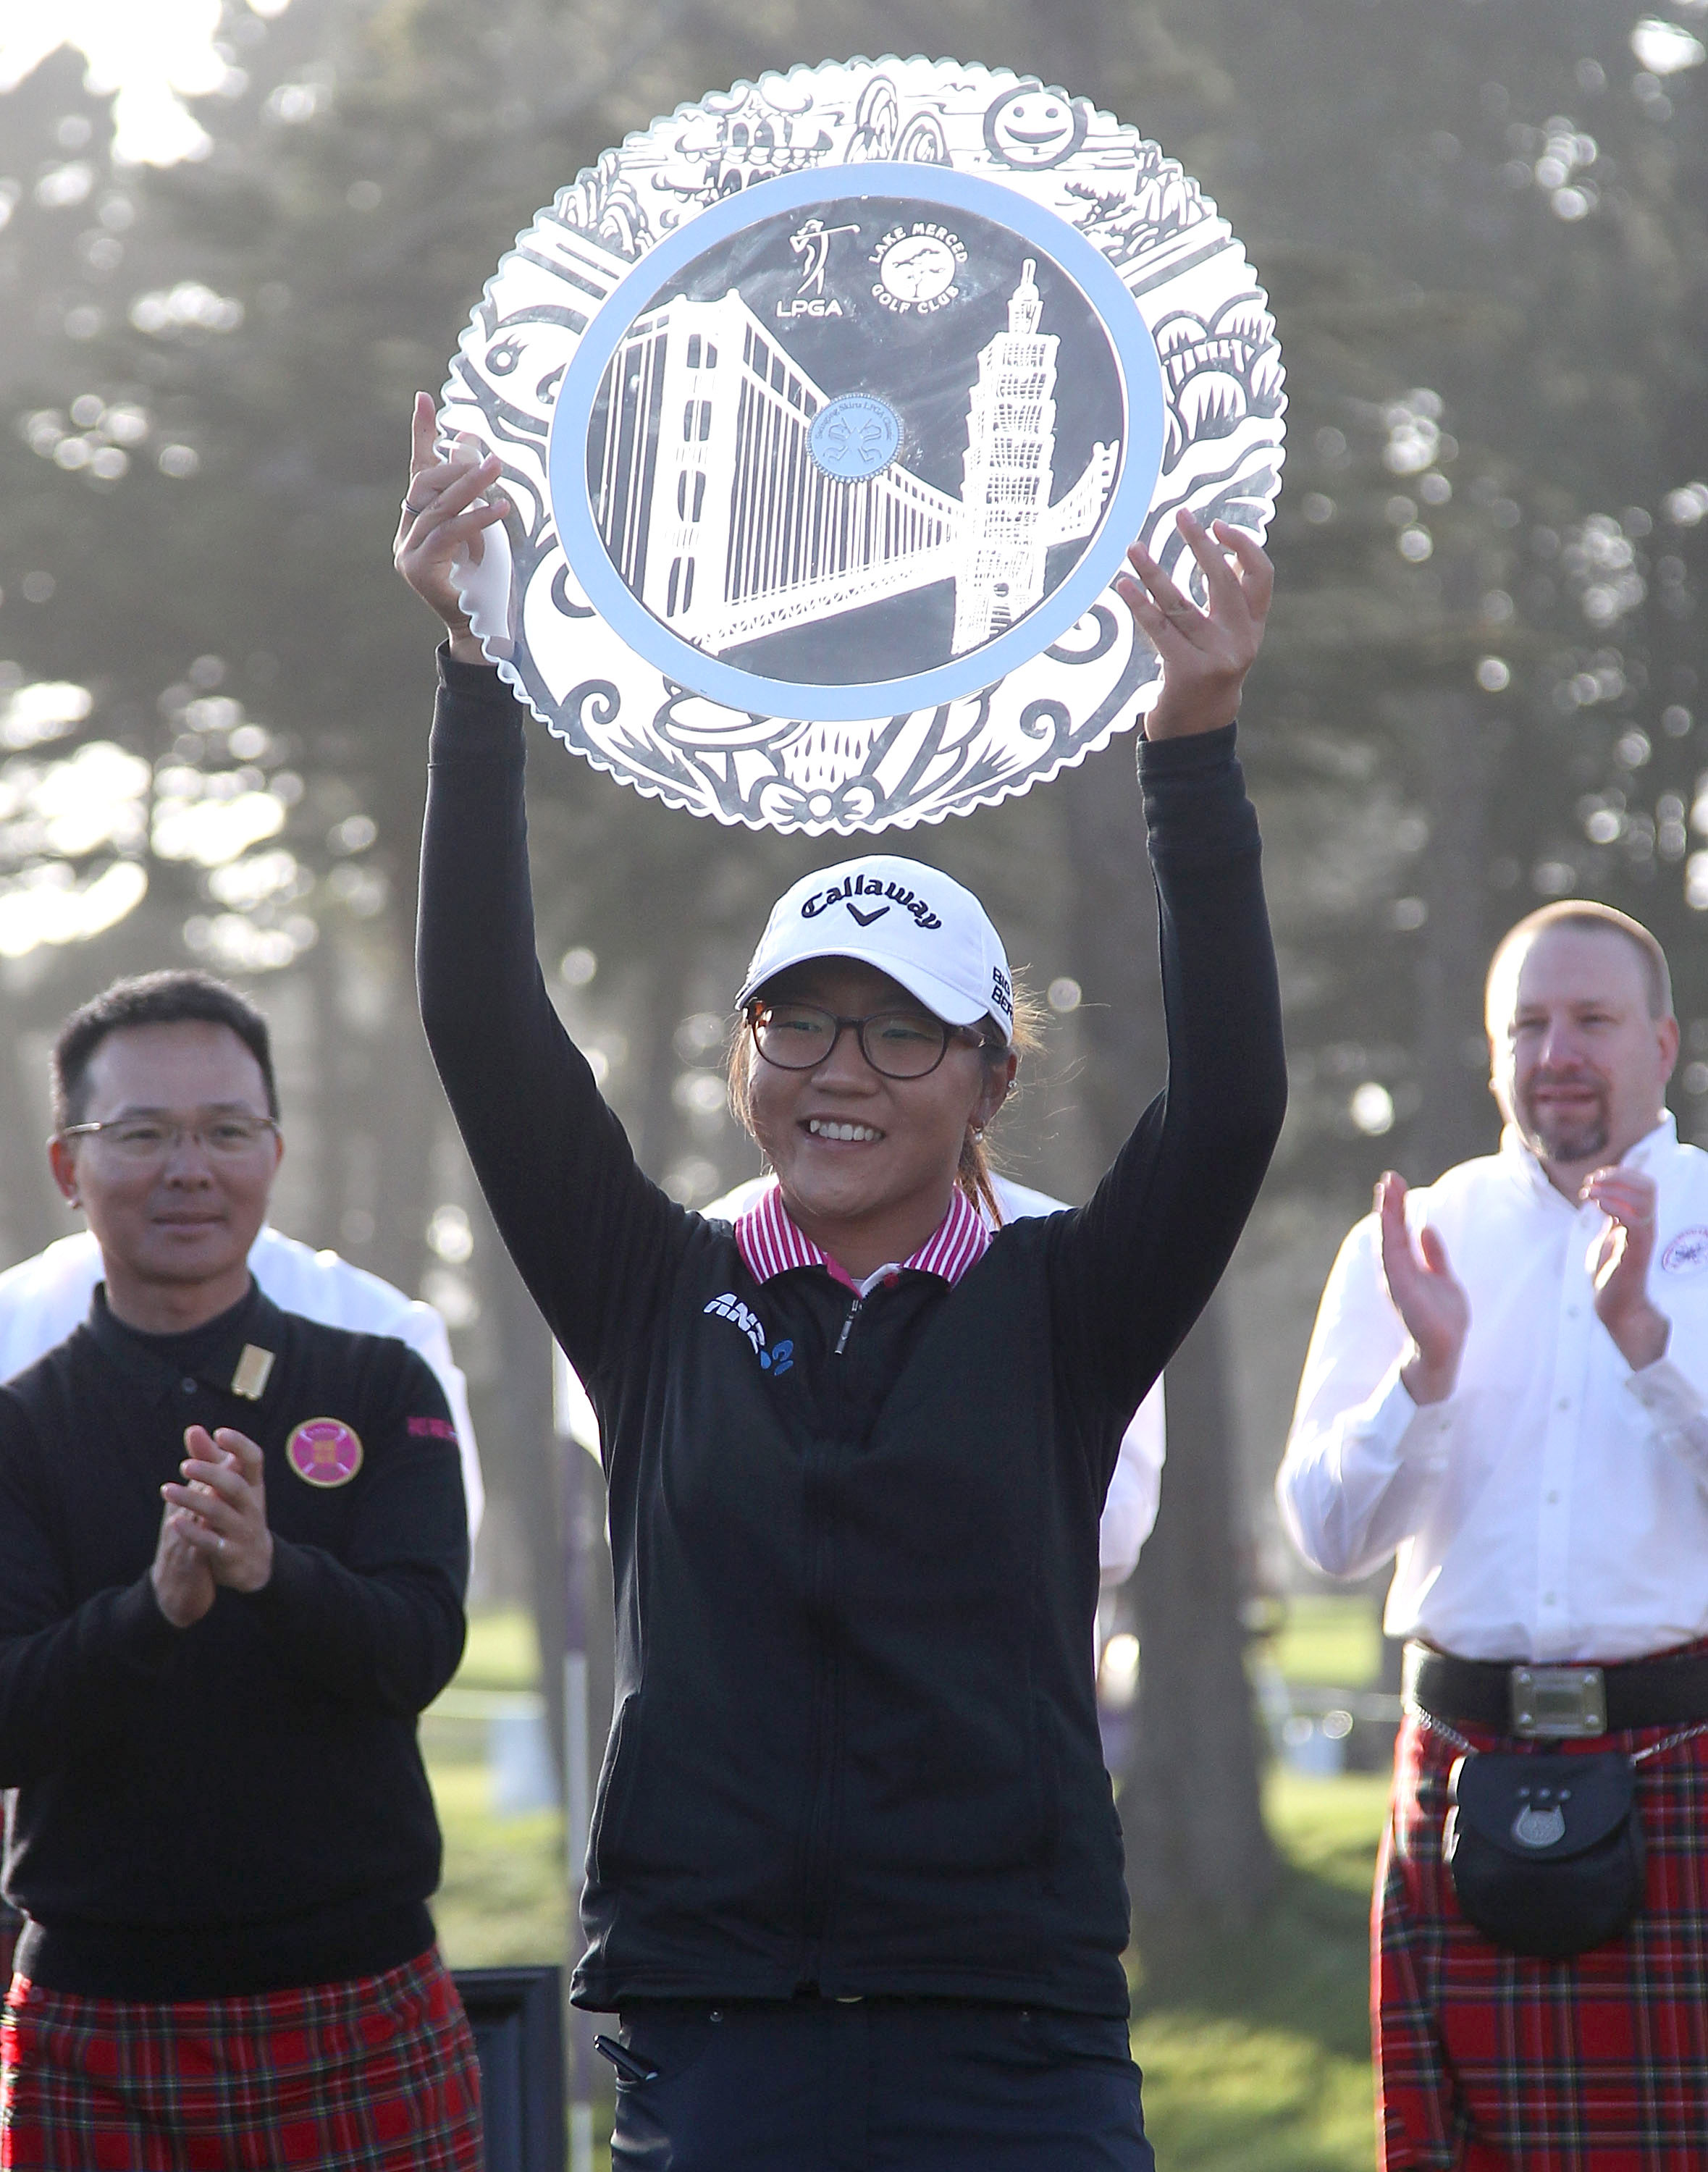 Lydia Ko raises the trophy after winning the Swinging Skirts LPGA Classic at the Lake Merced Golf Club on April 27, 2014, in San Francisco, California. It was her first win since turning professional.